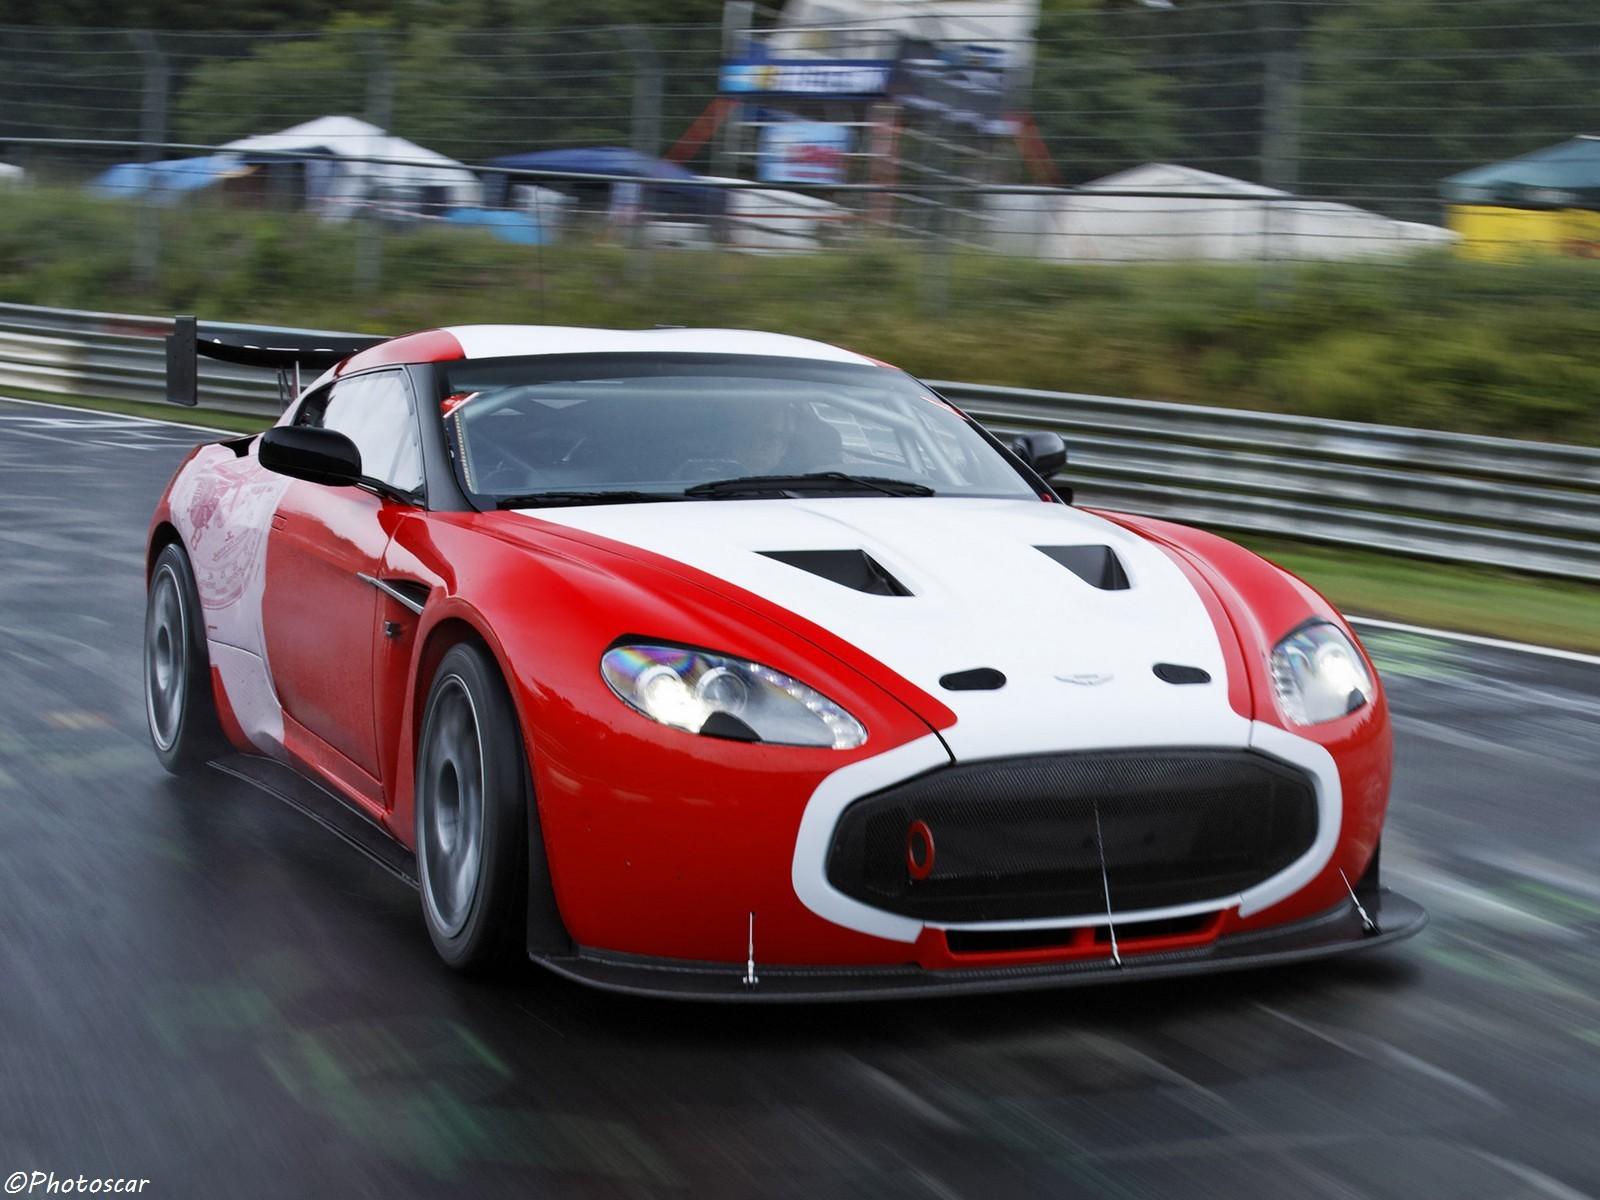 Aston Martin V12_Zagato_Race_Car 2011